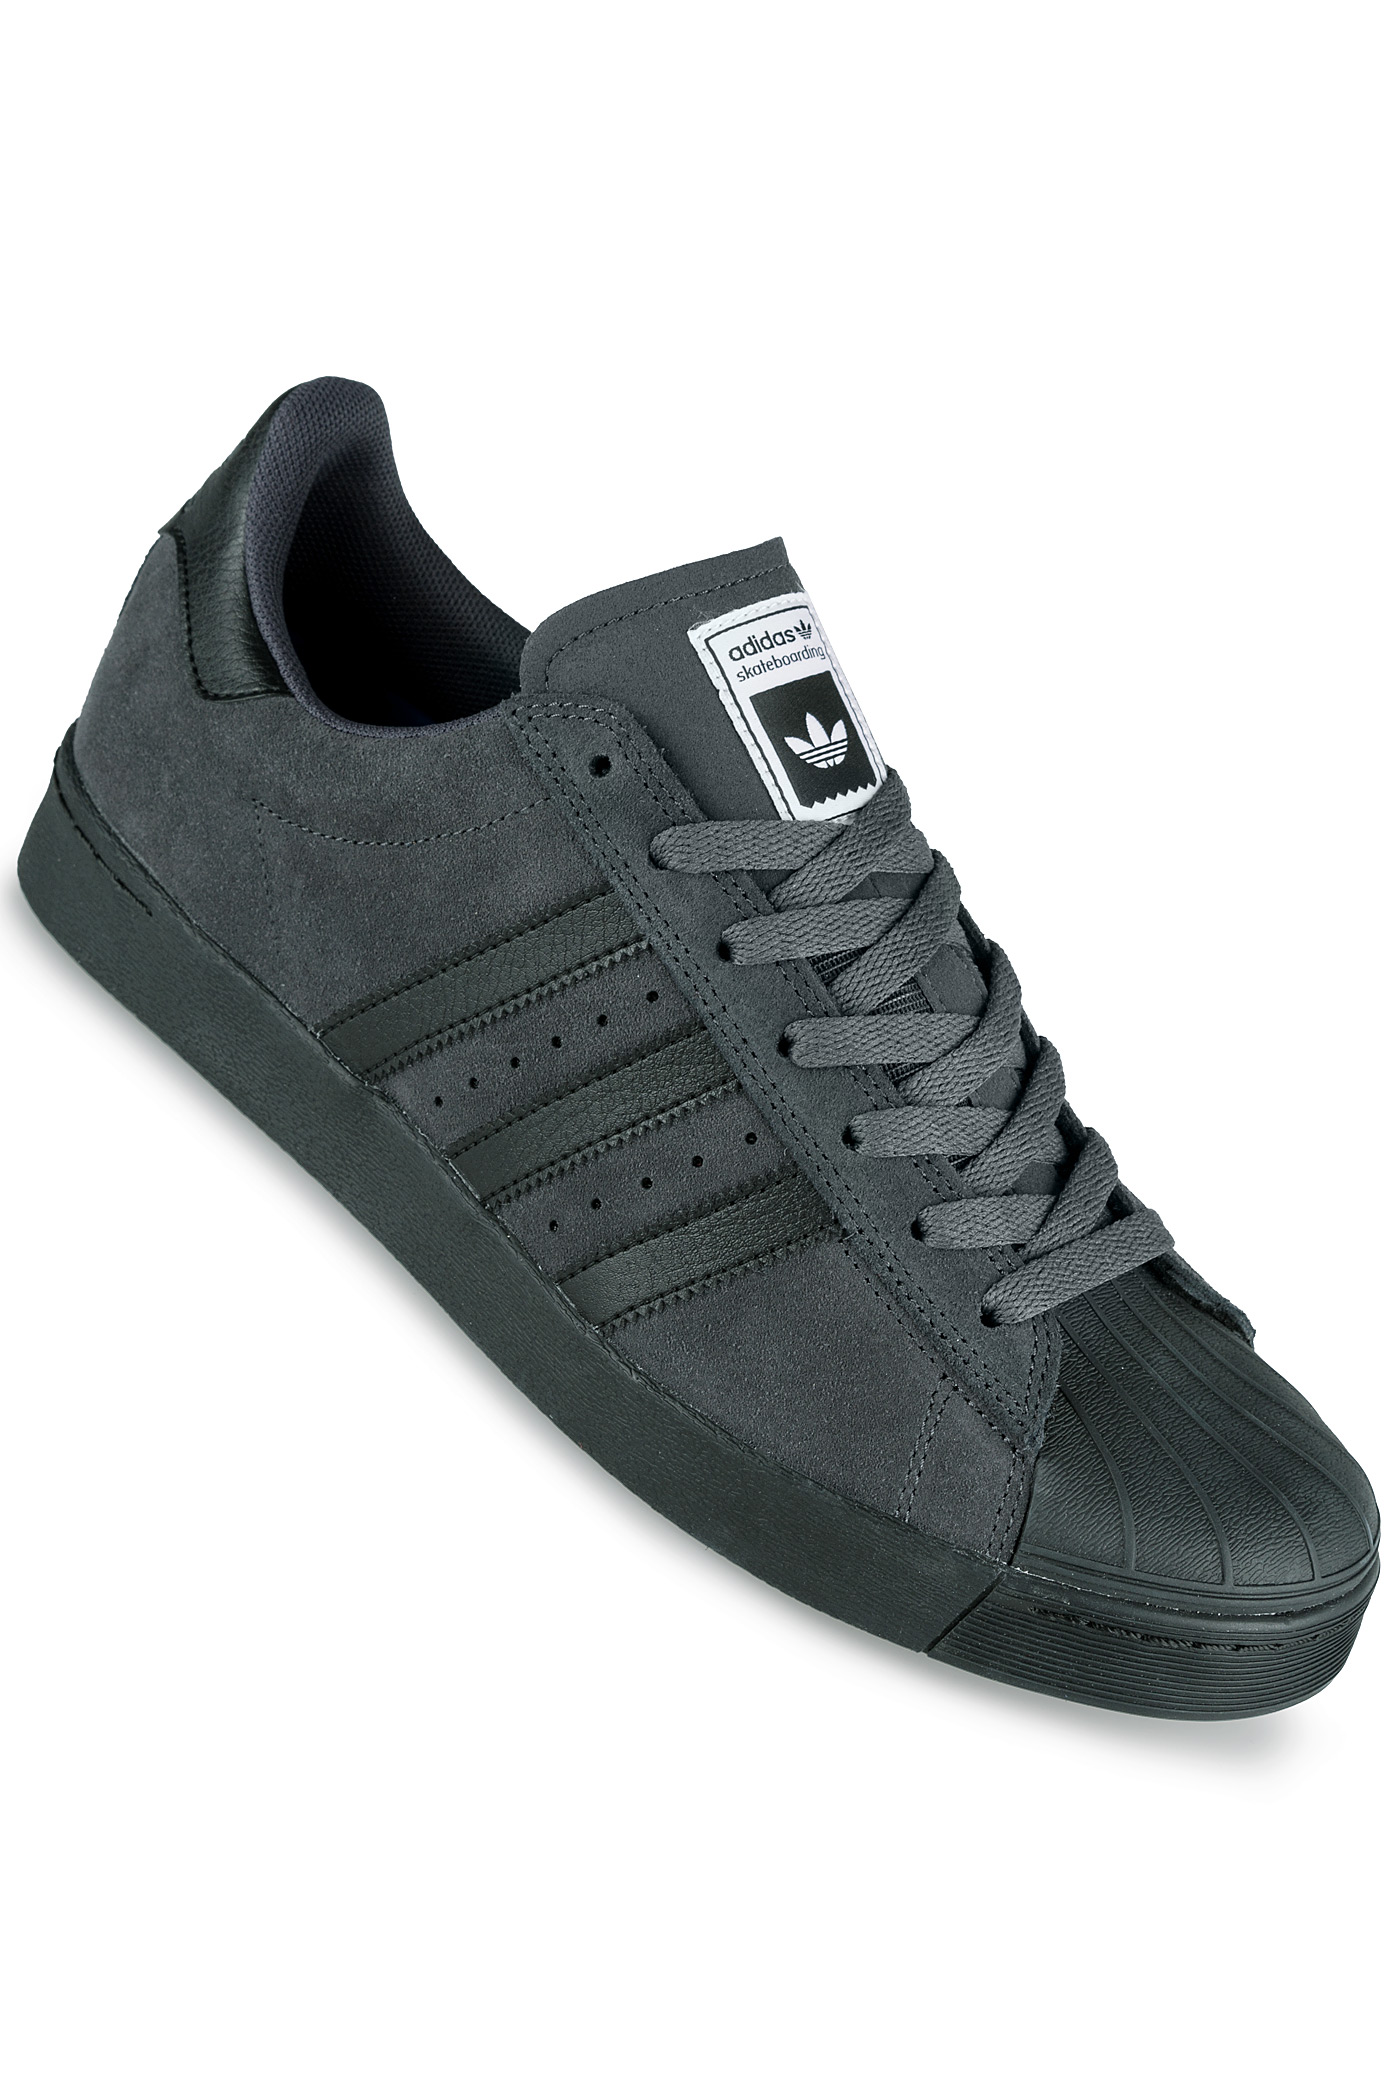 60%OFF adidas Originals Men's Superstar Vulc Adv antica trattoria.lu